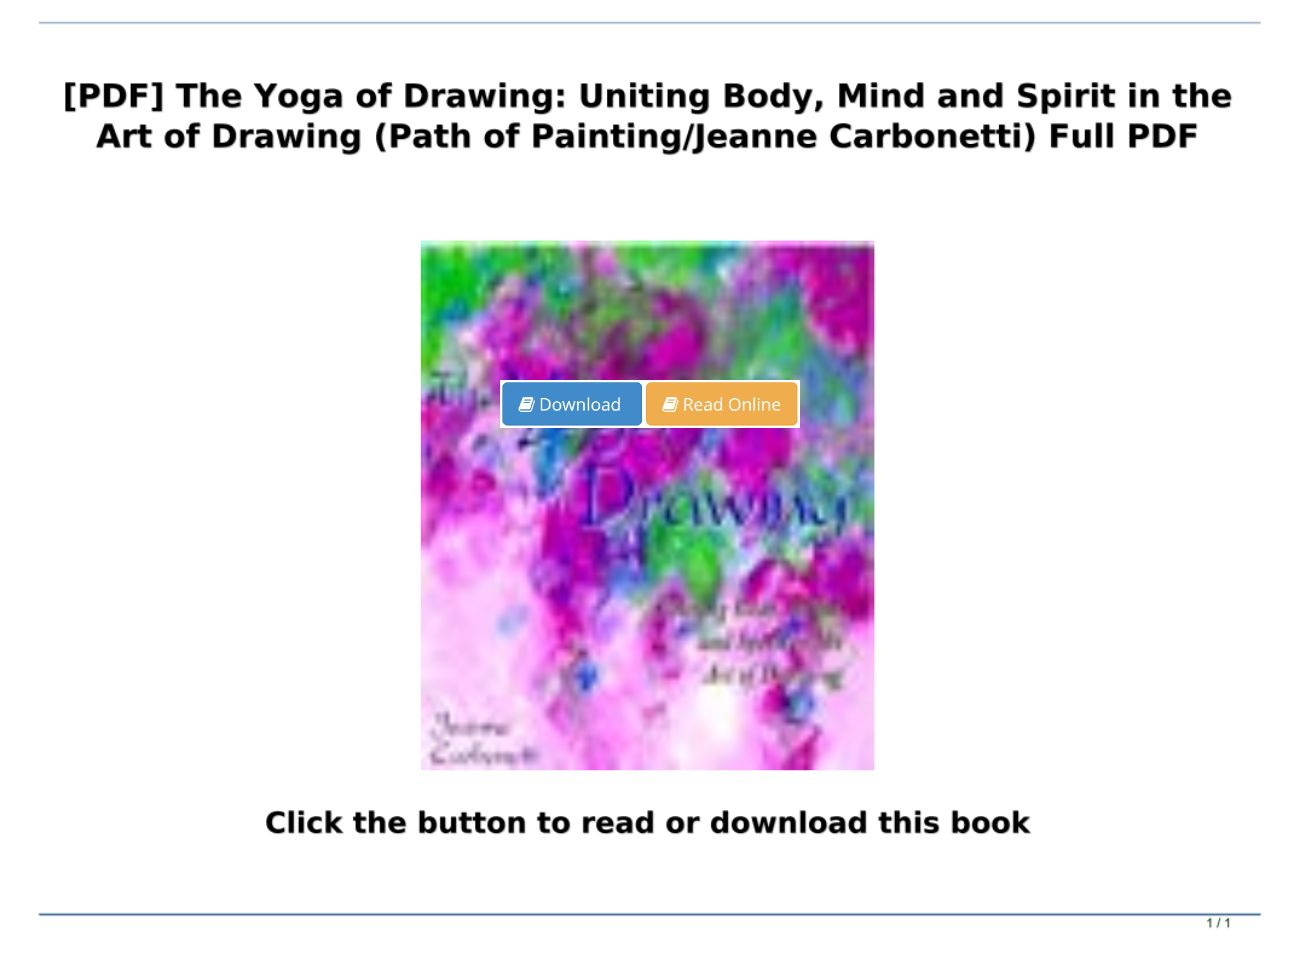 Download Pdf The Yoga Of Drawing Uniting Body Mind And Spirit In The Art Of Drawing Path Of P Text Images Music Video Glogster Edu Interactive Multimedia Posters